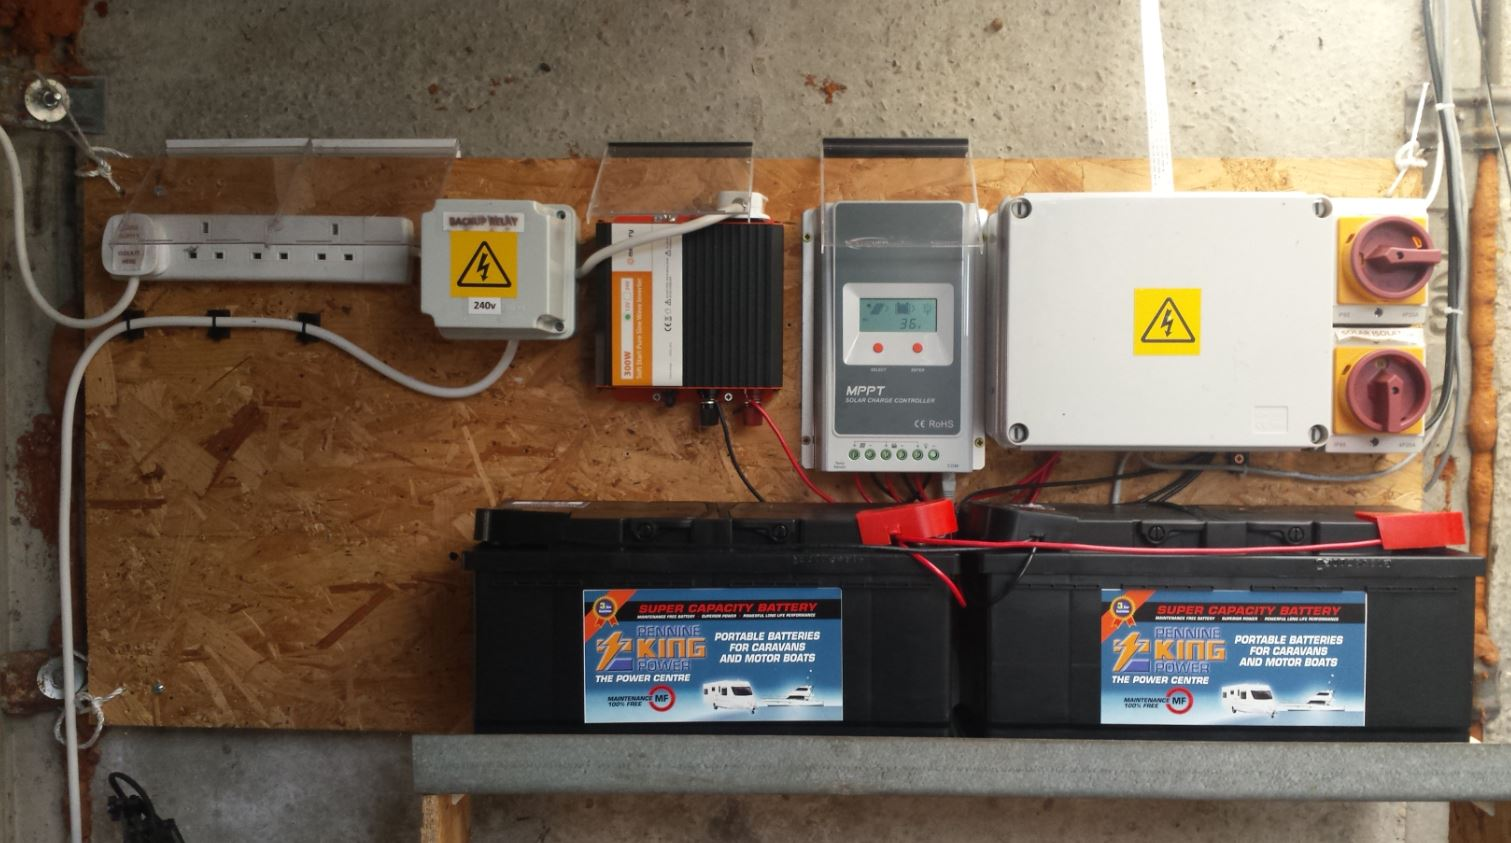 My Solar Power Internet Monitor Using A Raspberry Pi And Tracer 2210a Wiring Small Battery Bank Panels Forum The Website Link Below Explains How Most Of It Was Achieved With Aim Showing Easy Is To Implement Scale System At Home